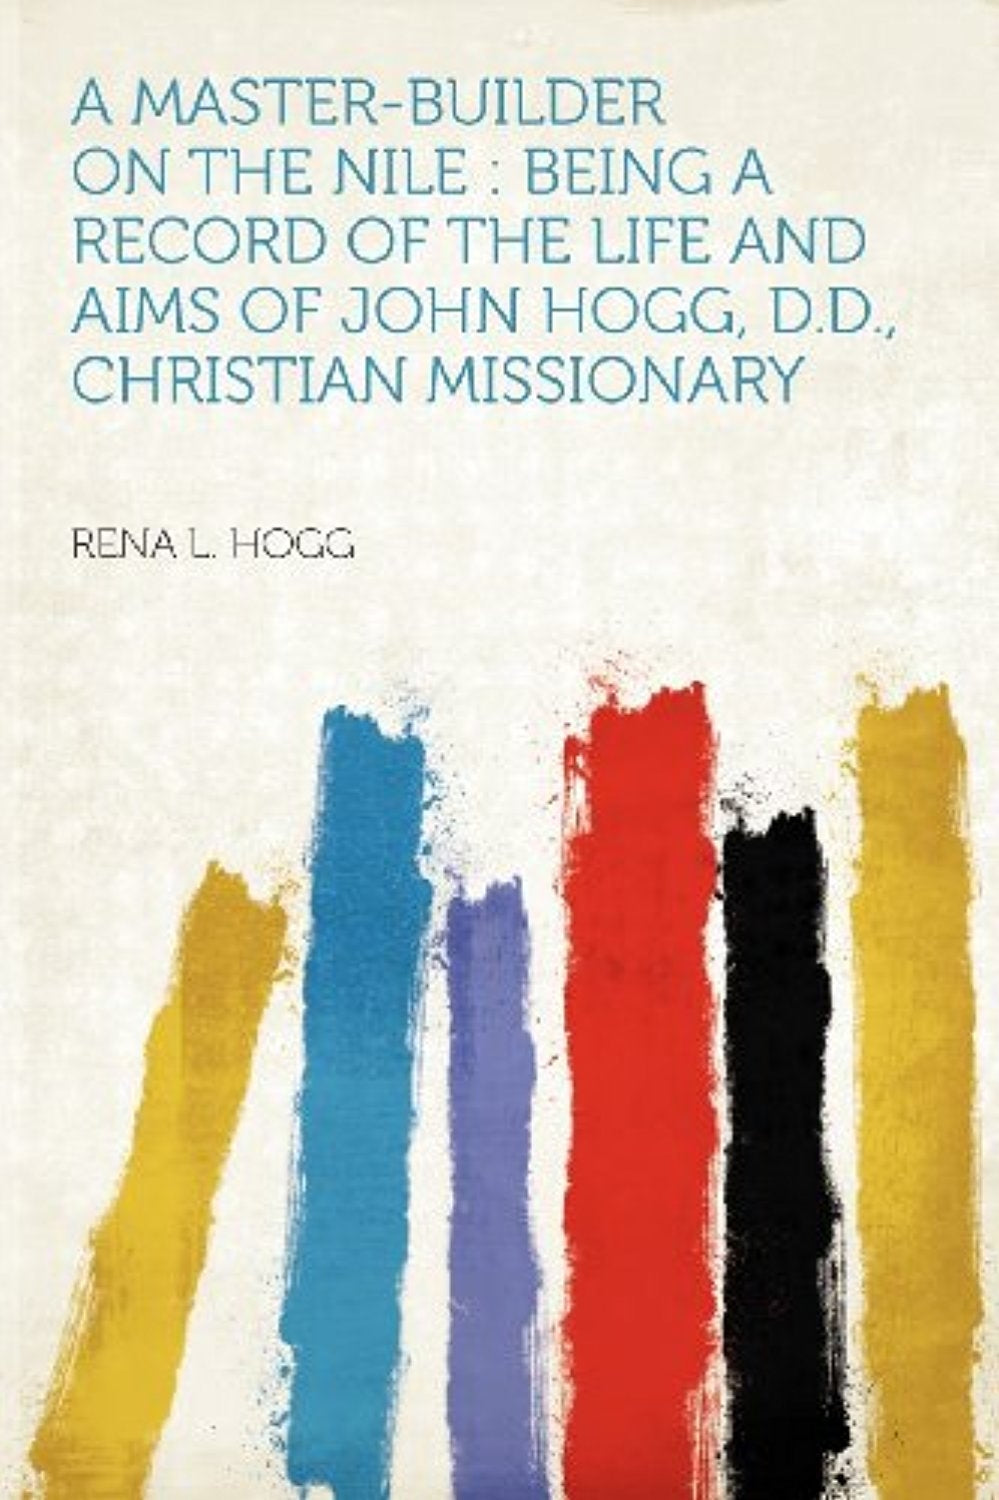 A Master-builder on the Nile: Being a Record of the Life and Aims of John Hogg, D.D., Christian Missionary